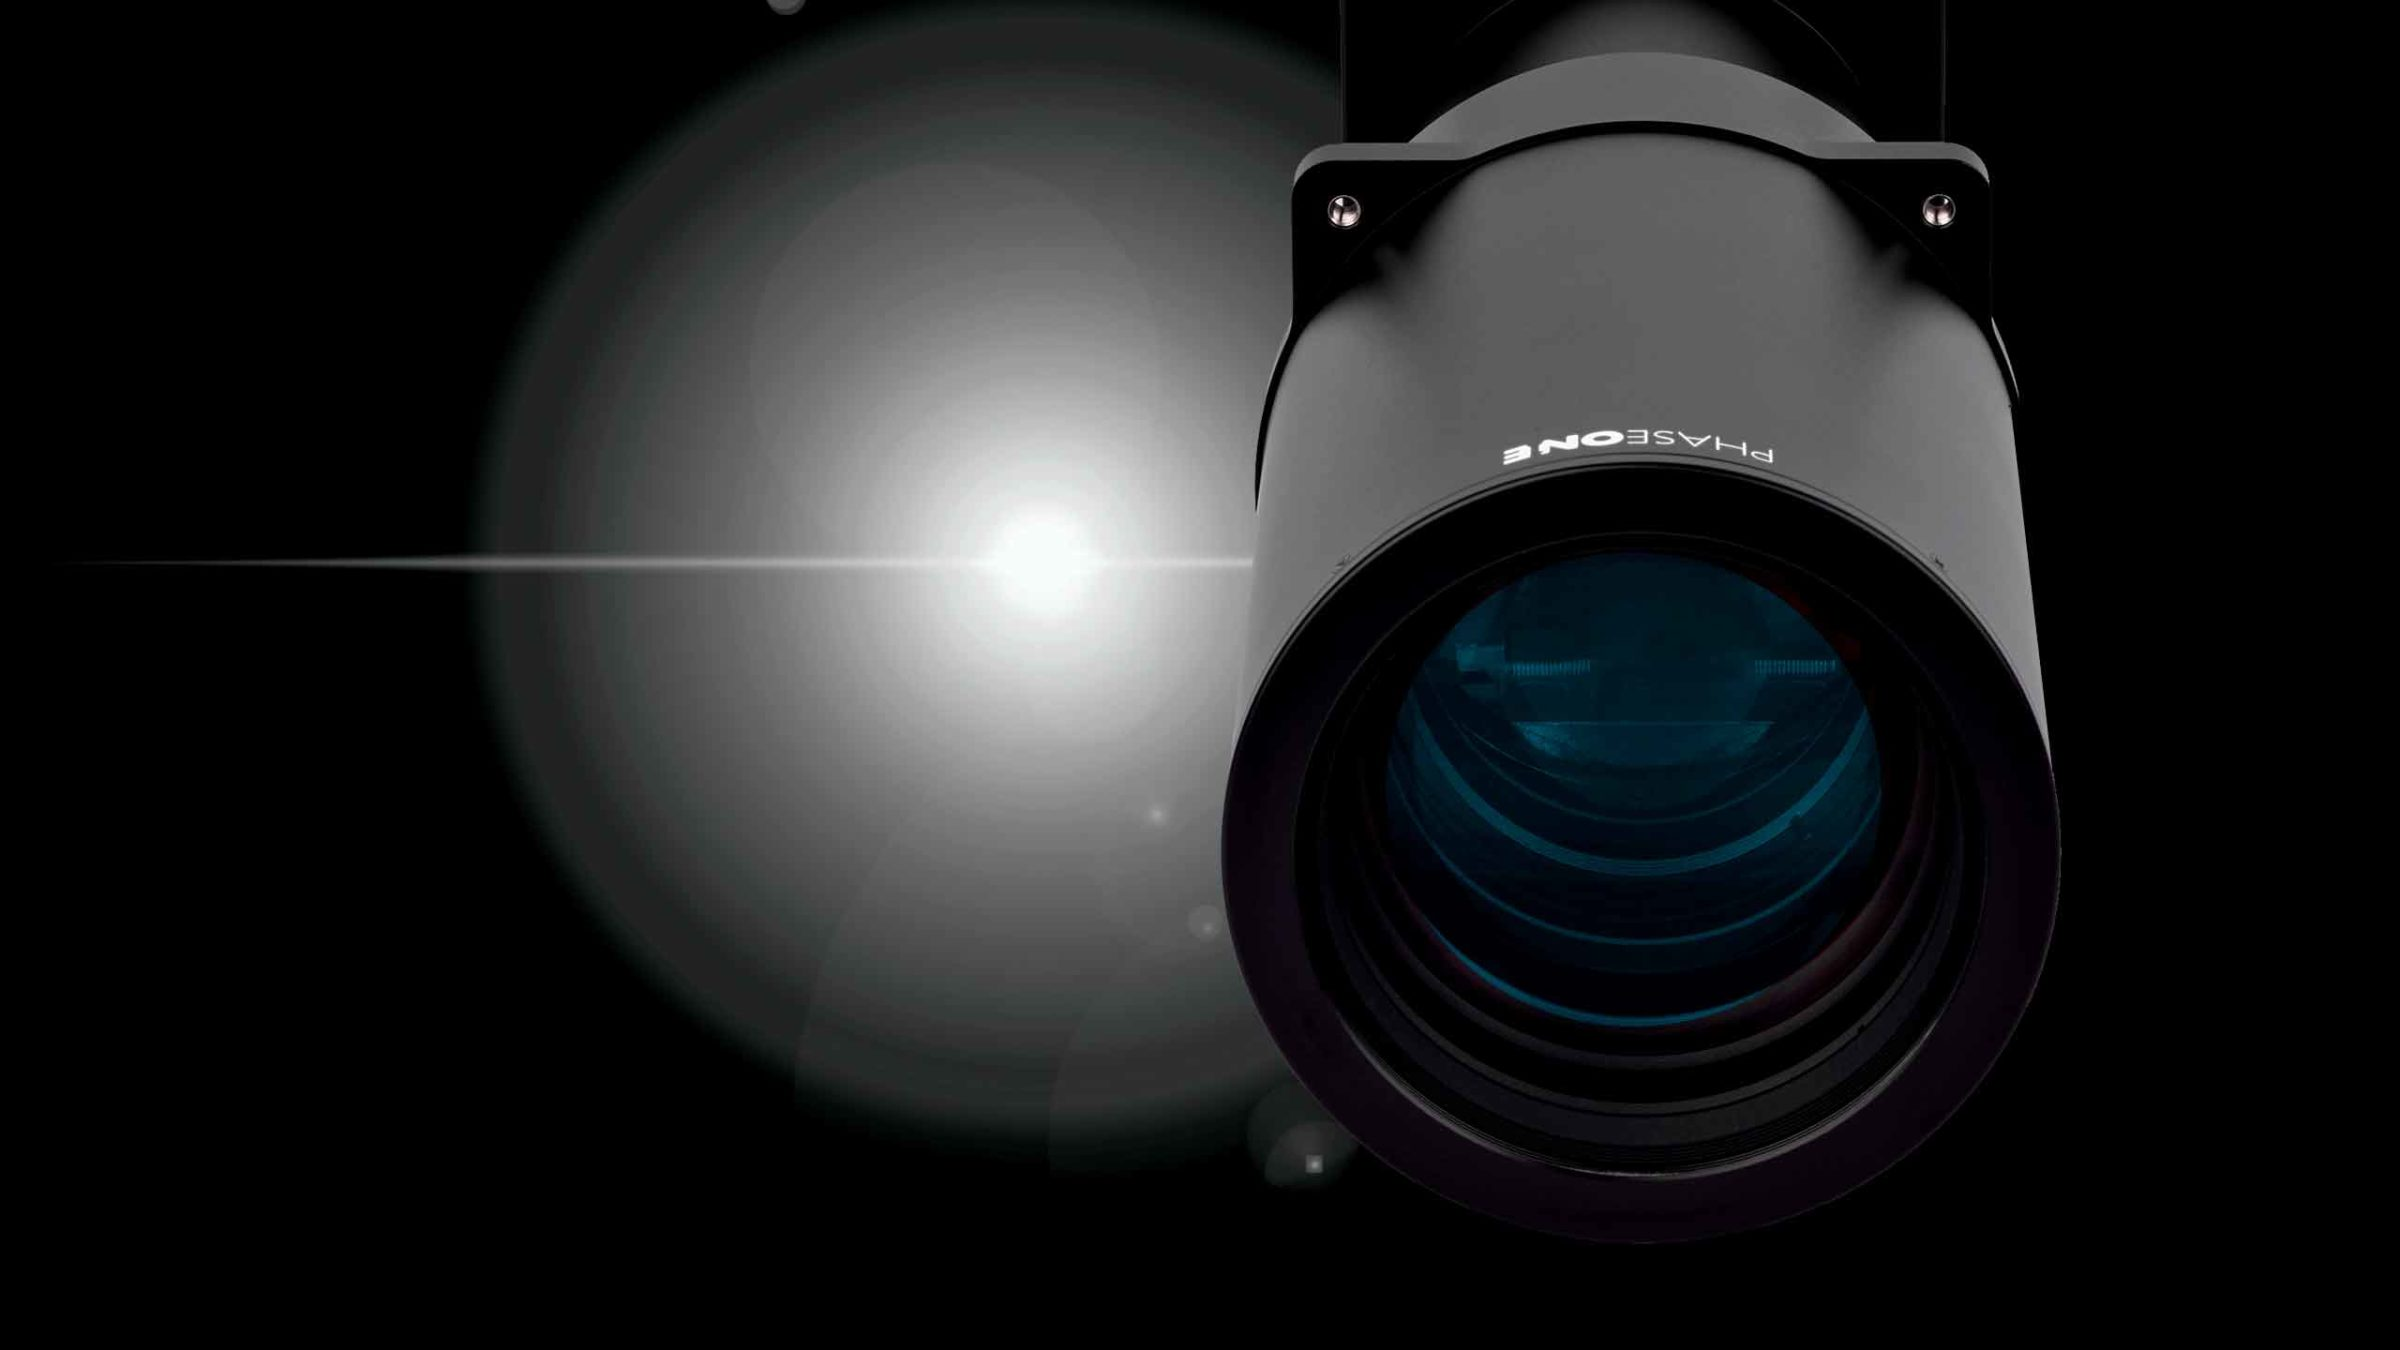 Aerial and Industrial cameras